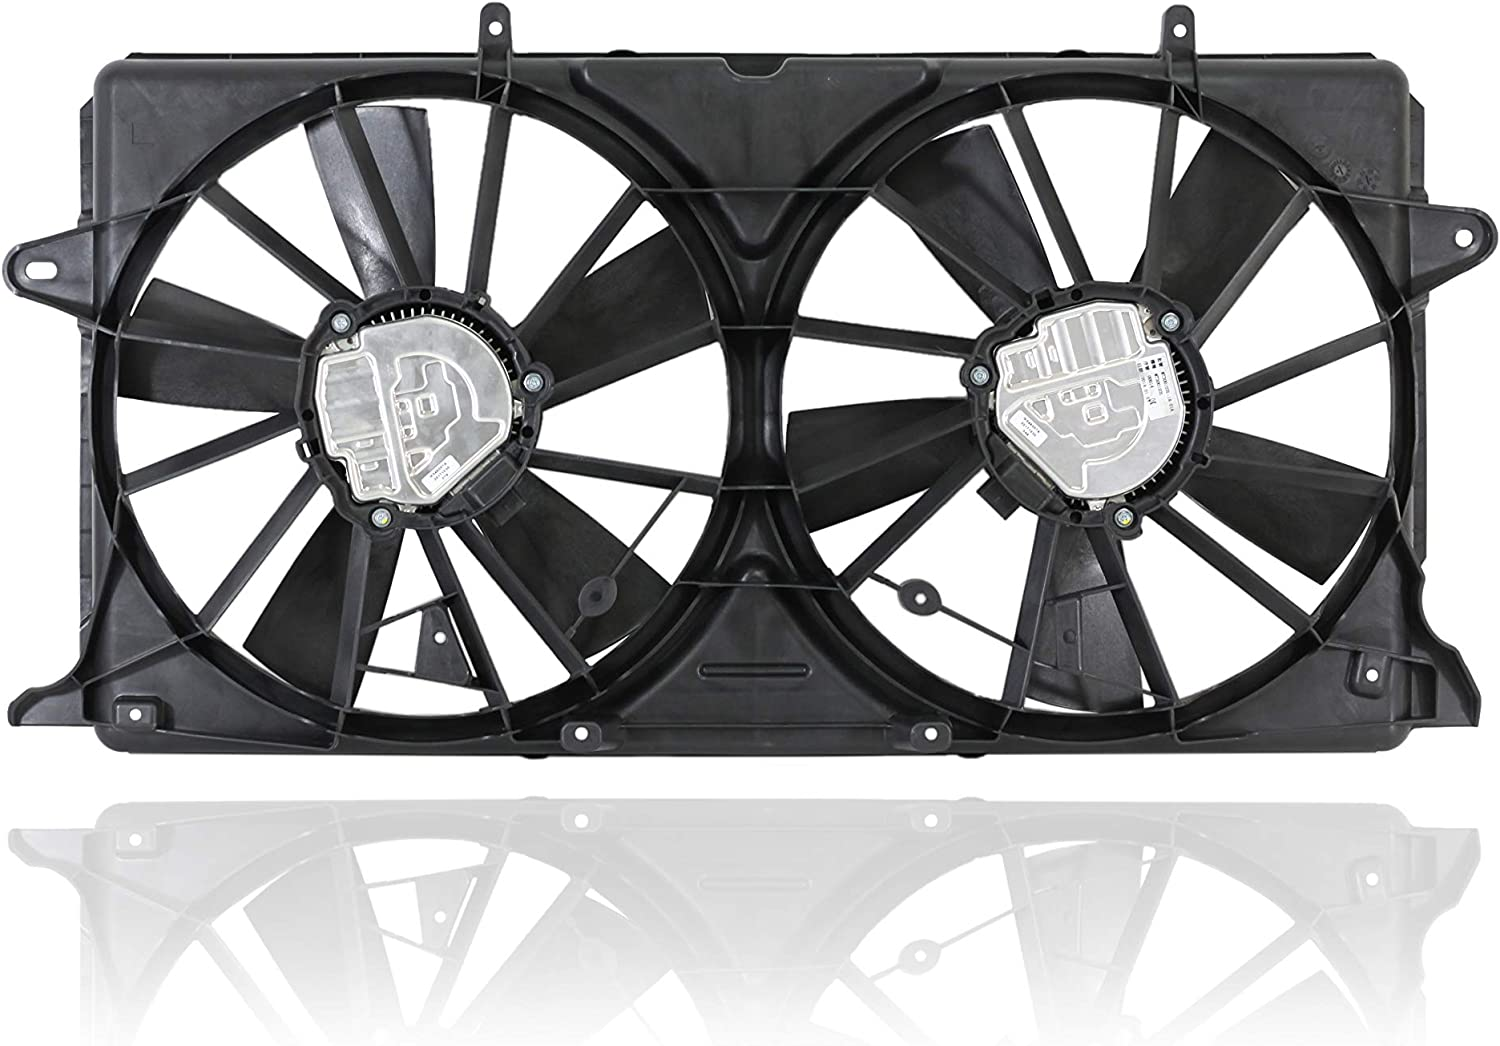 Dual Radiator and Condenser Fan Assembly - Cooling Direct For/Fit 23123635 16-17 Cadillac Escalade/ESV 14-17 Chevrolet Silverado/GMC Sierra 1500 15-17 Suburban/Tahoe 16-17 GMC Yukon/XL/Denali